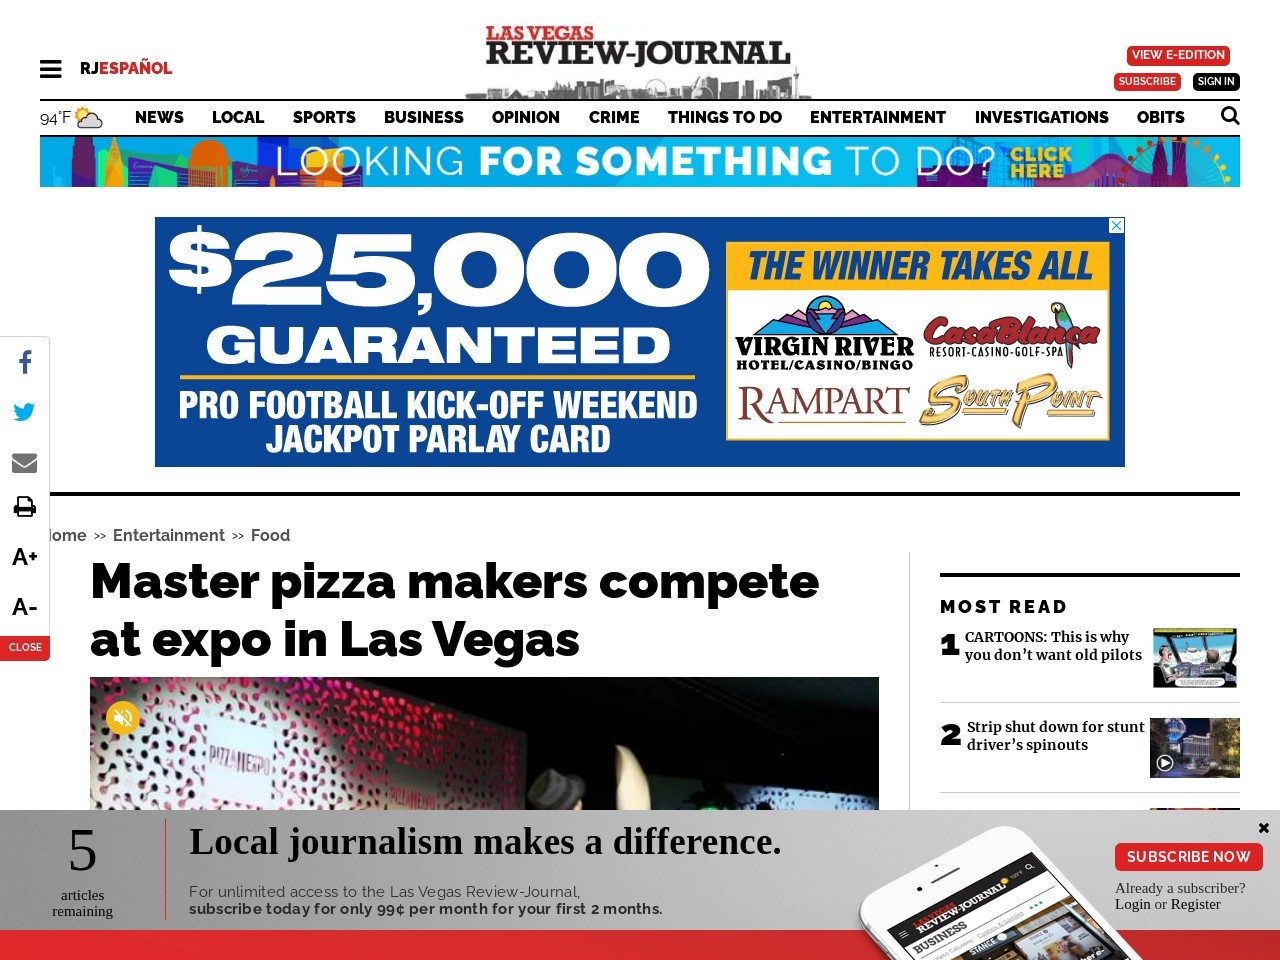 Master pizza makers compete at expo in Las Vegas